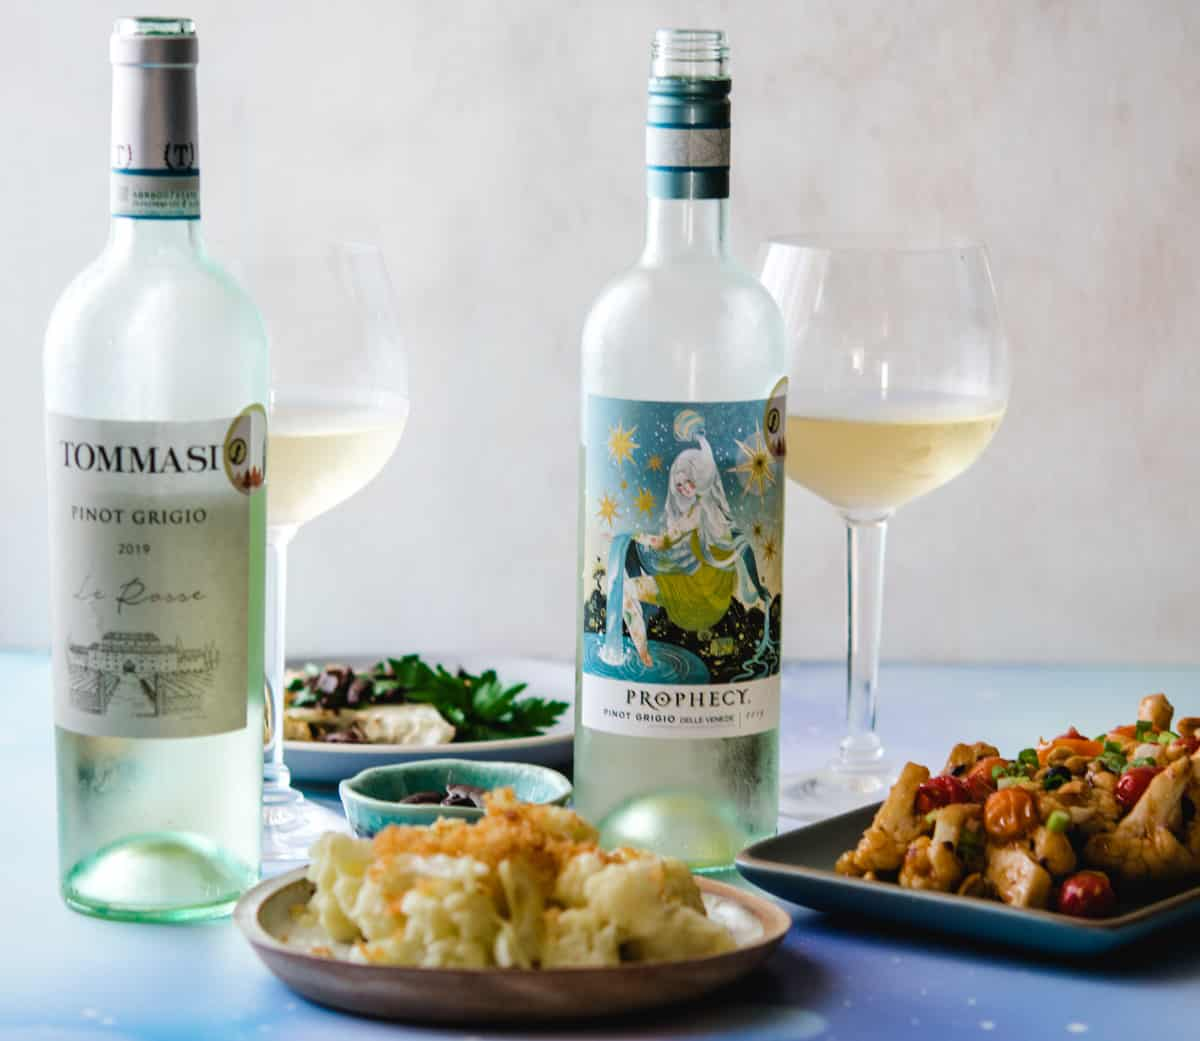 2 Italian pinot grigio bottles with 3 cauliflower dishes